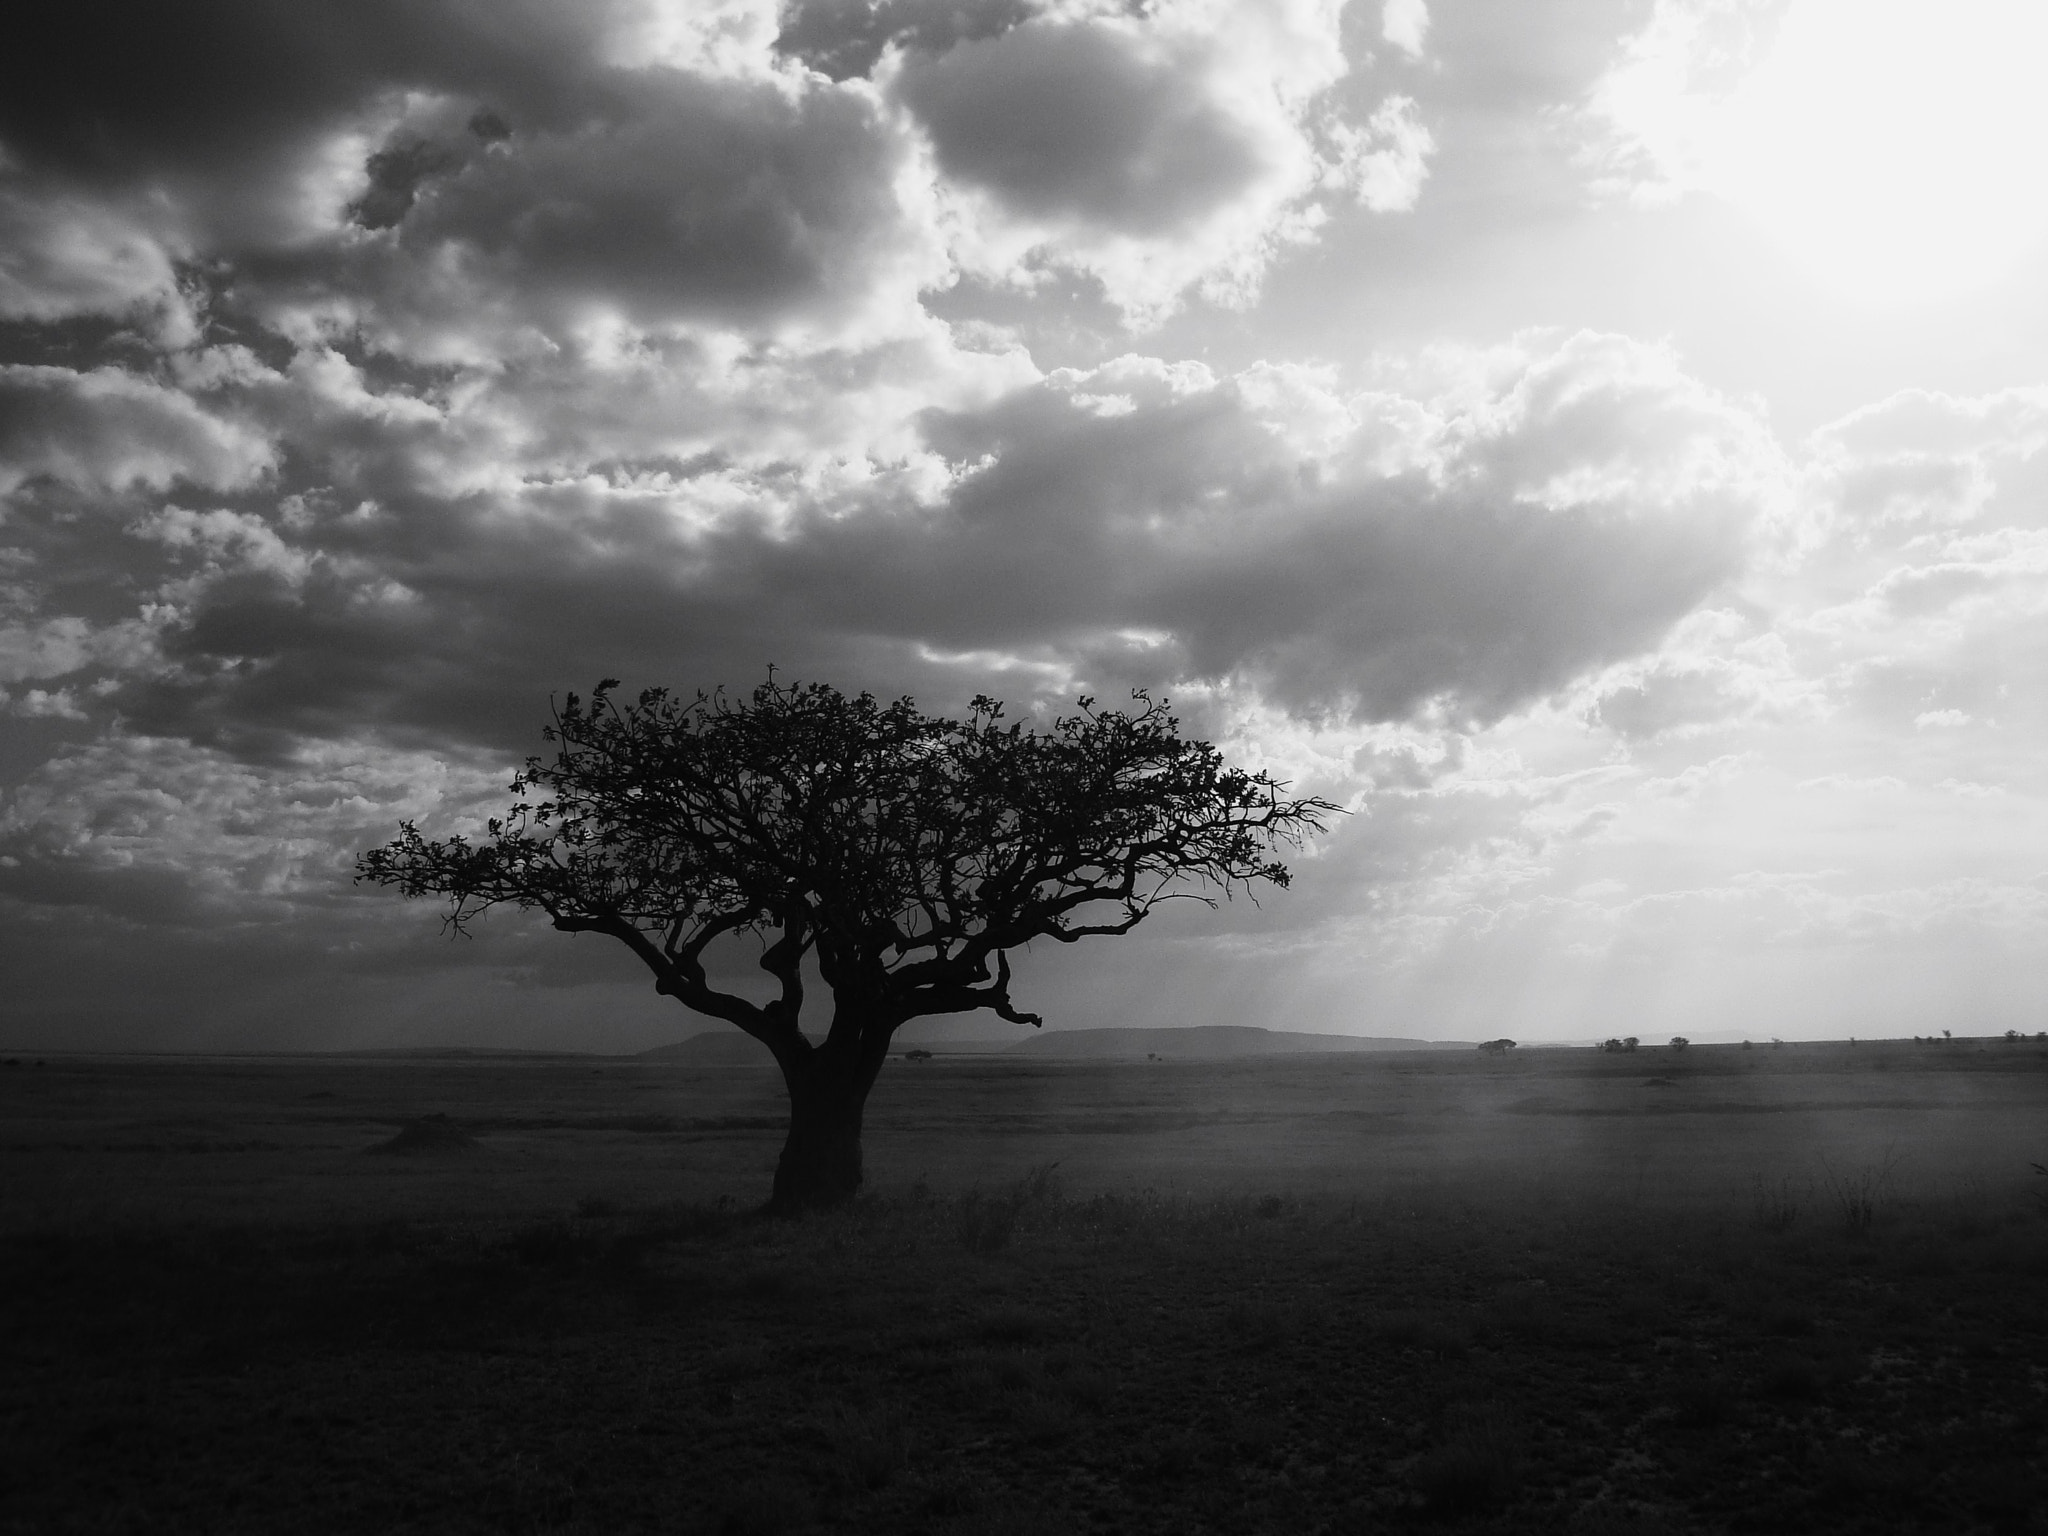 Photograph African B&W by JON TJADER on 500px